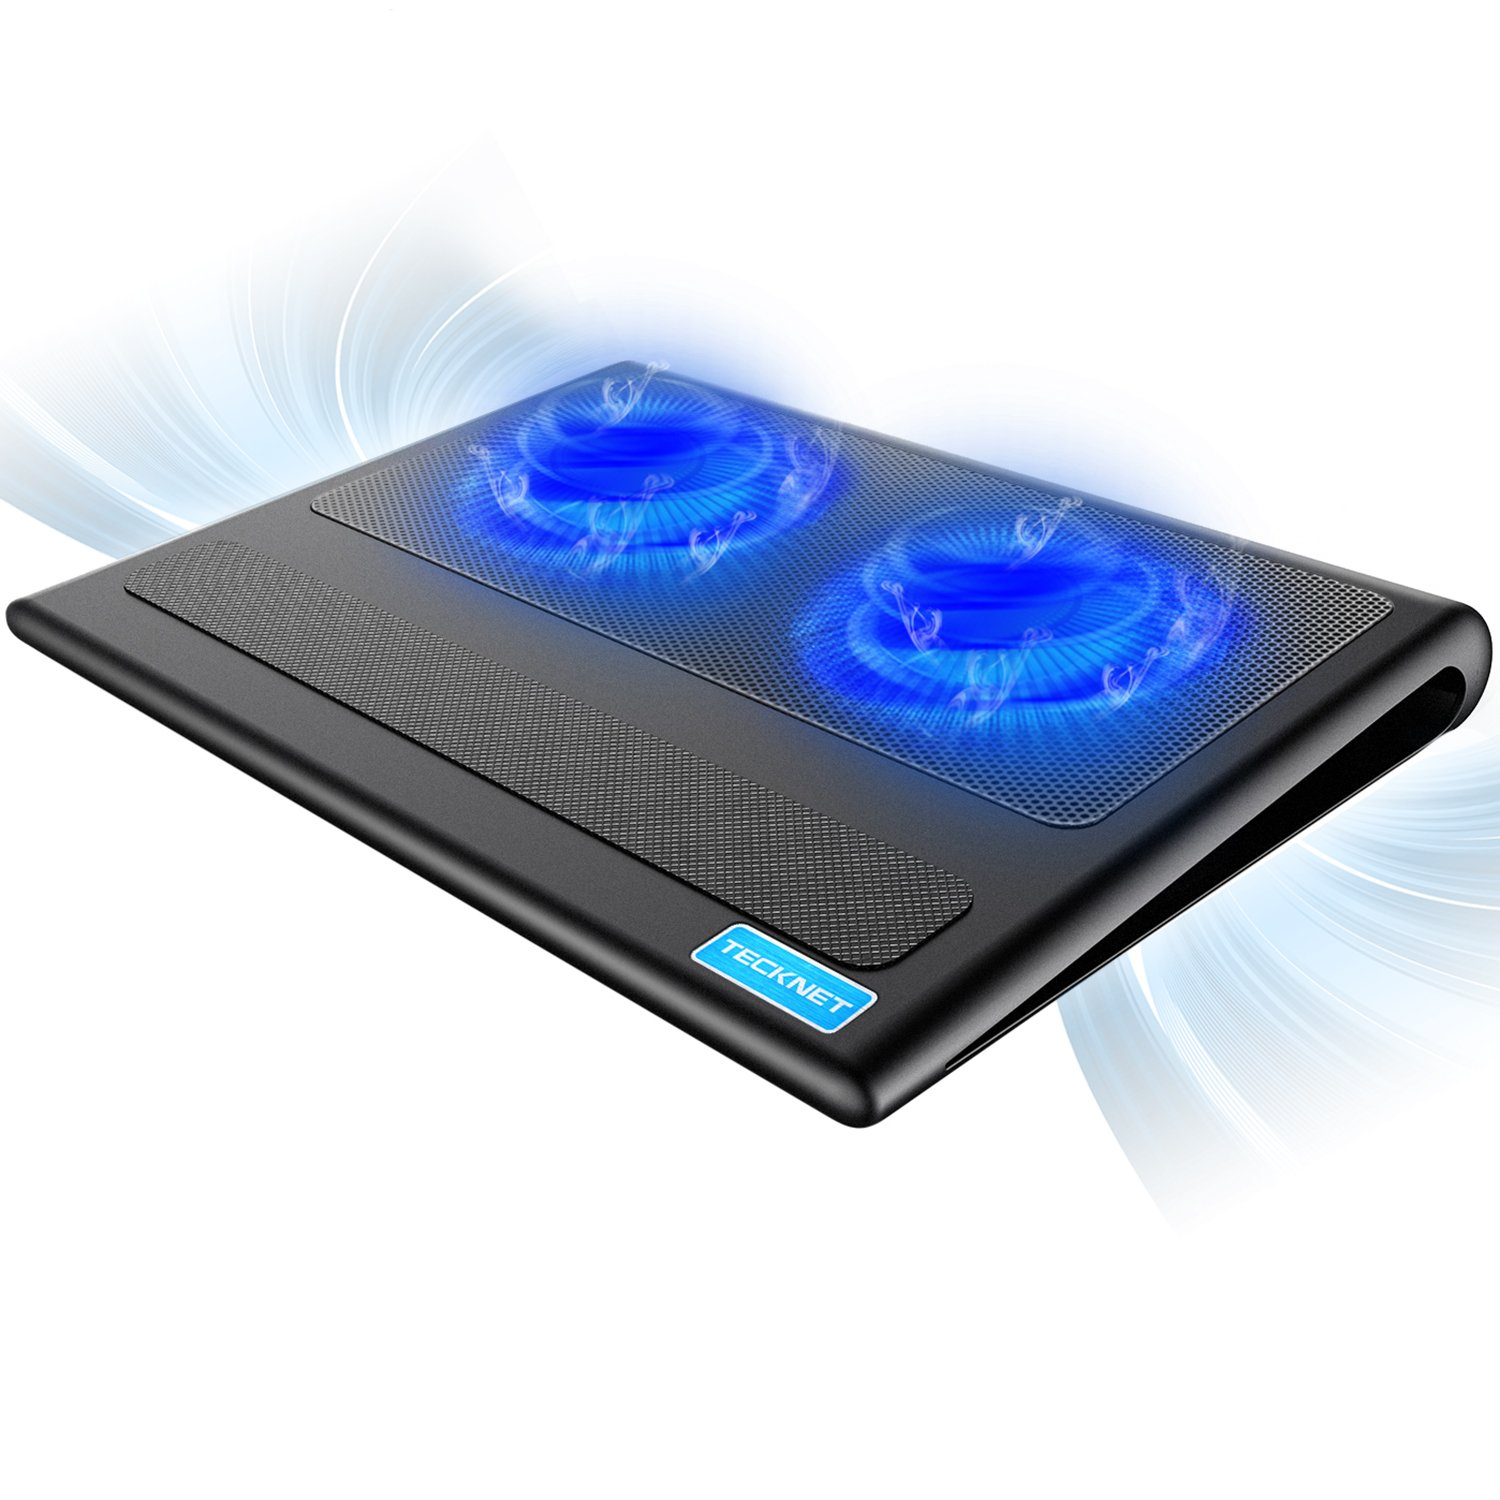 Top 10 Best Laptop Cooling Pads Reviews in 2020 2